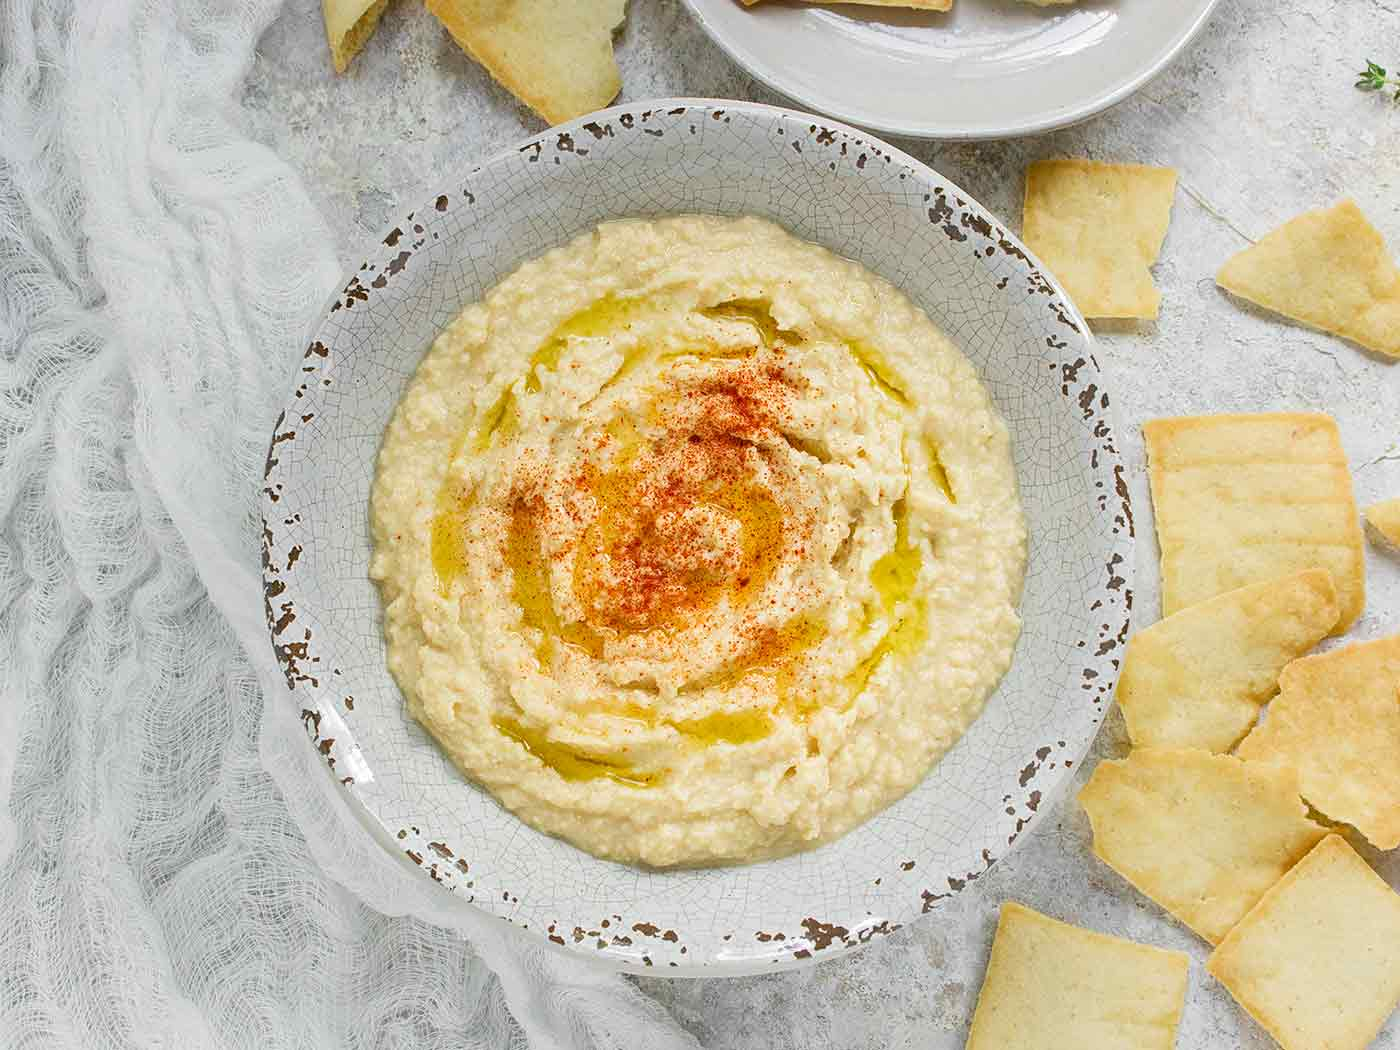 Smoked corn hummus in a bowl with a side of pita chips